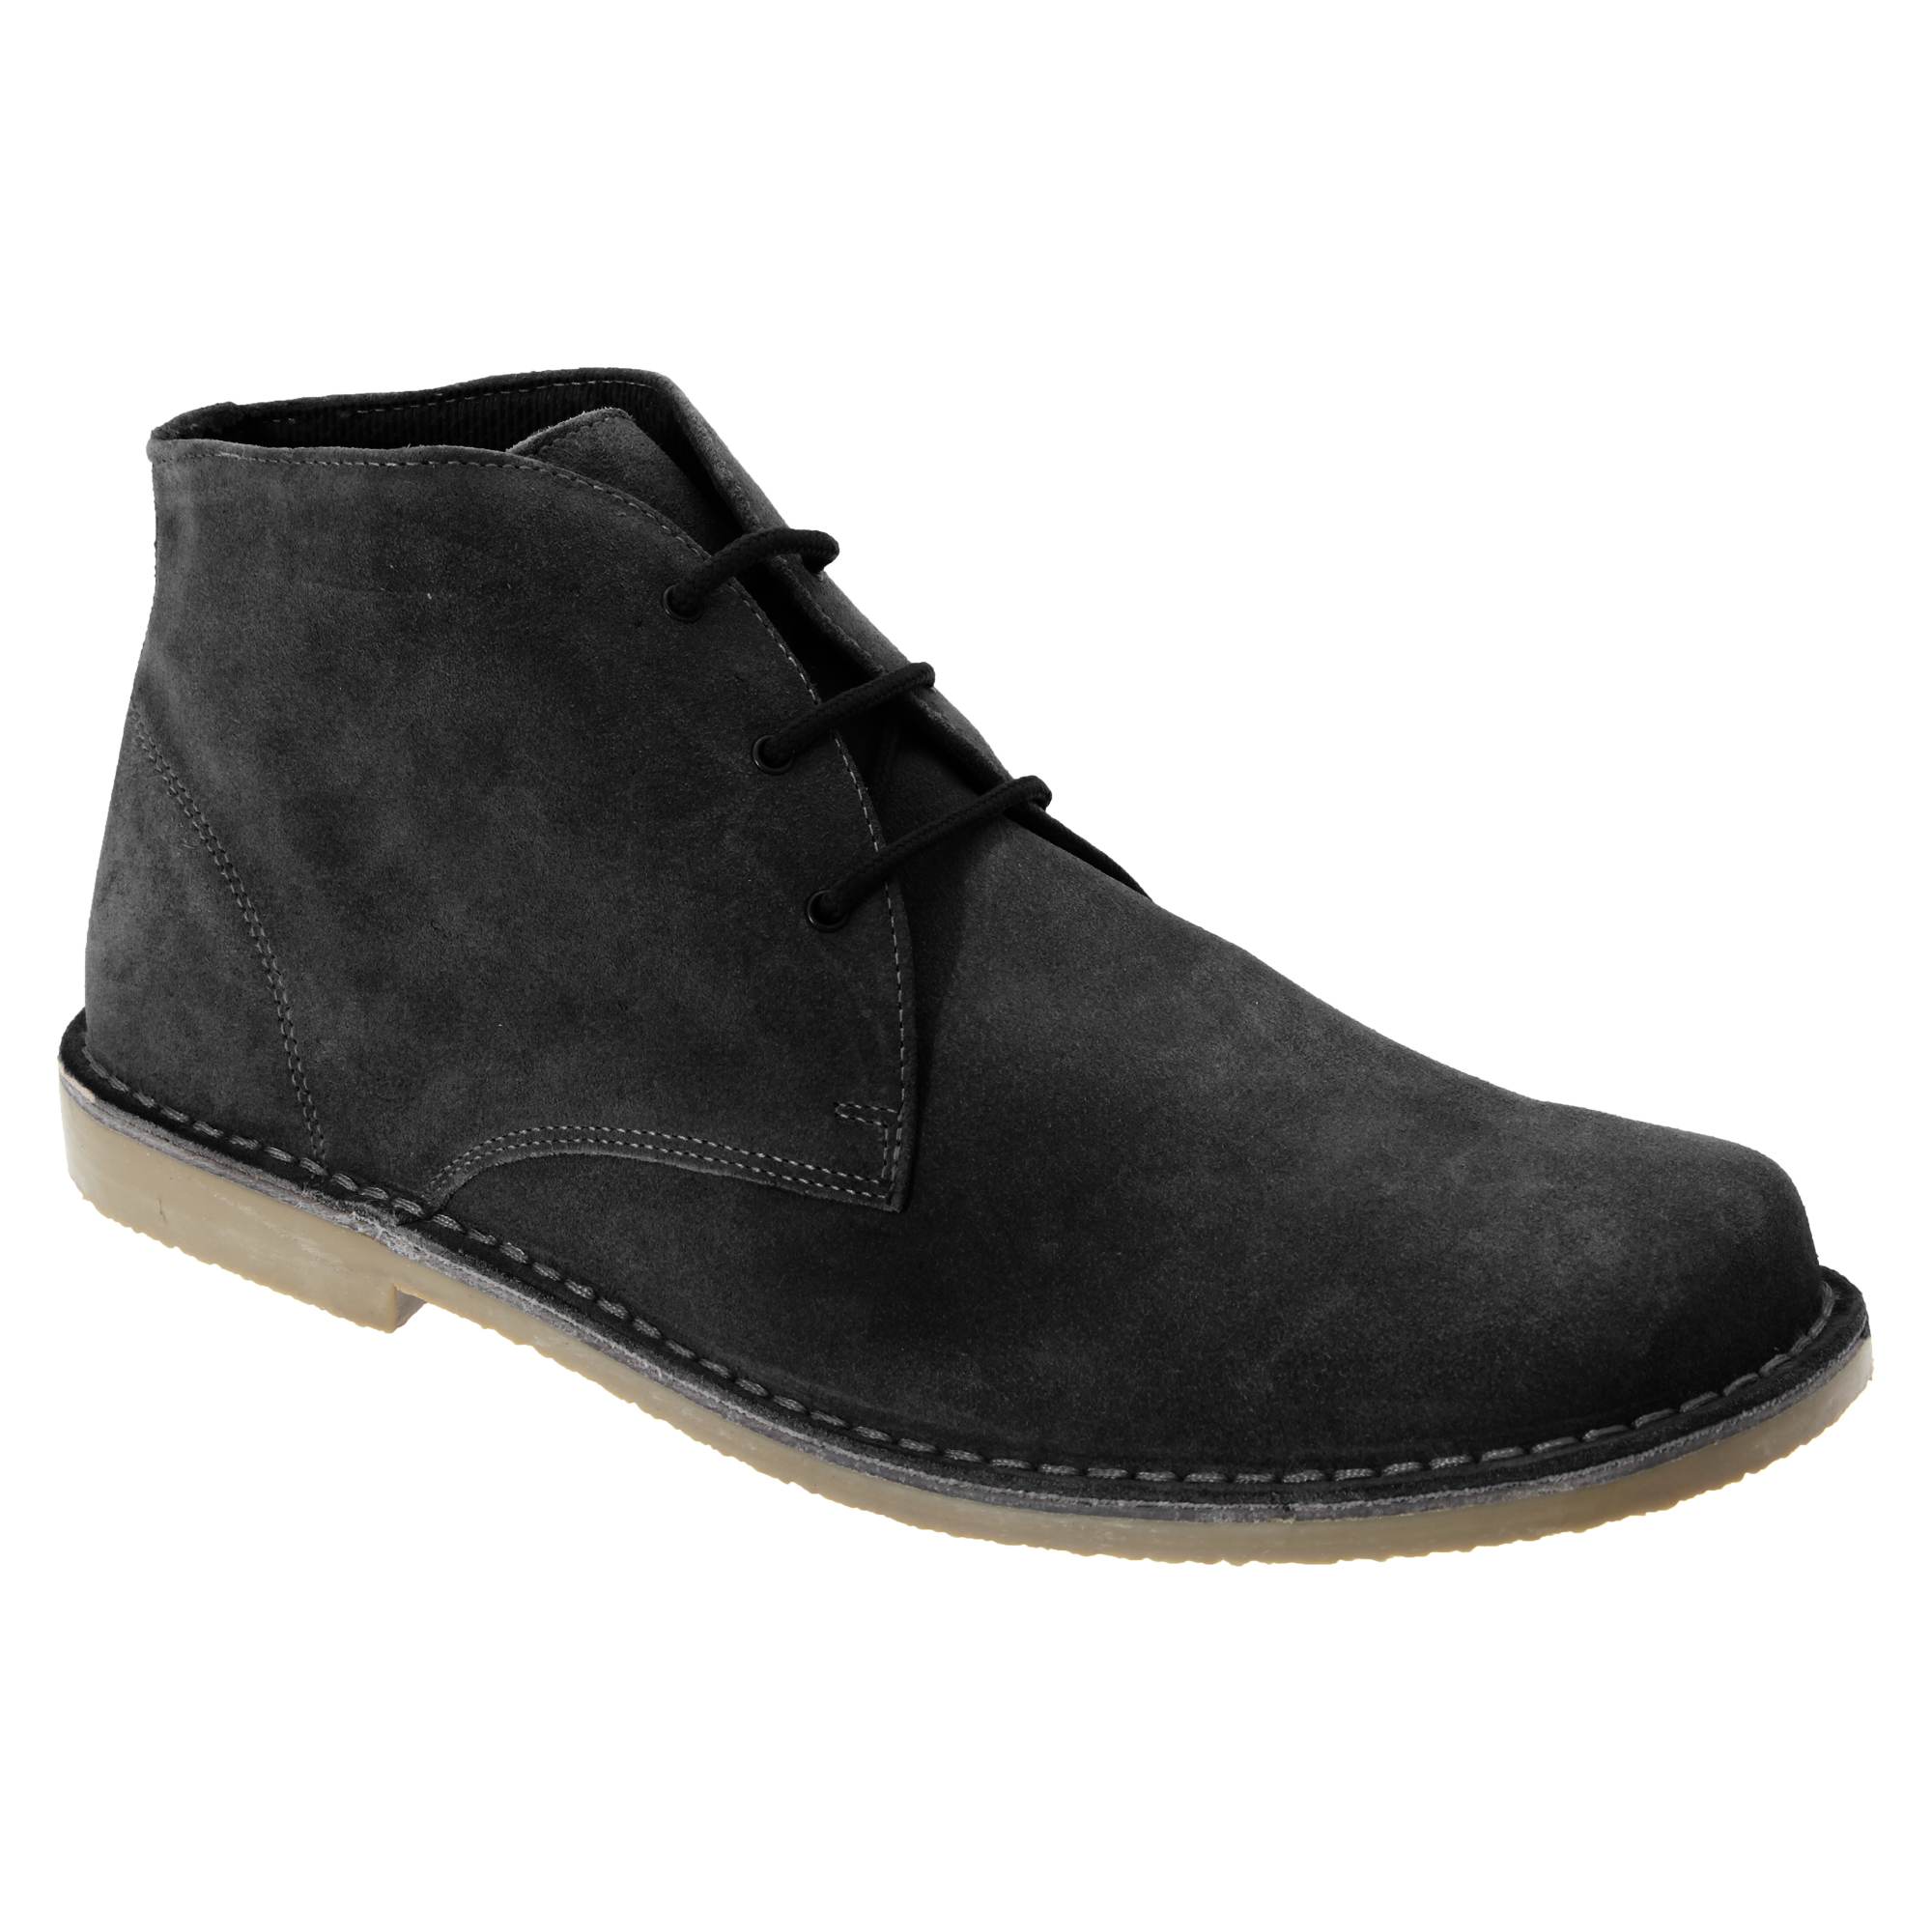 roamers mens real suede fulfit casual desert ankle boots